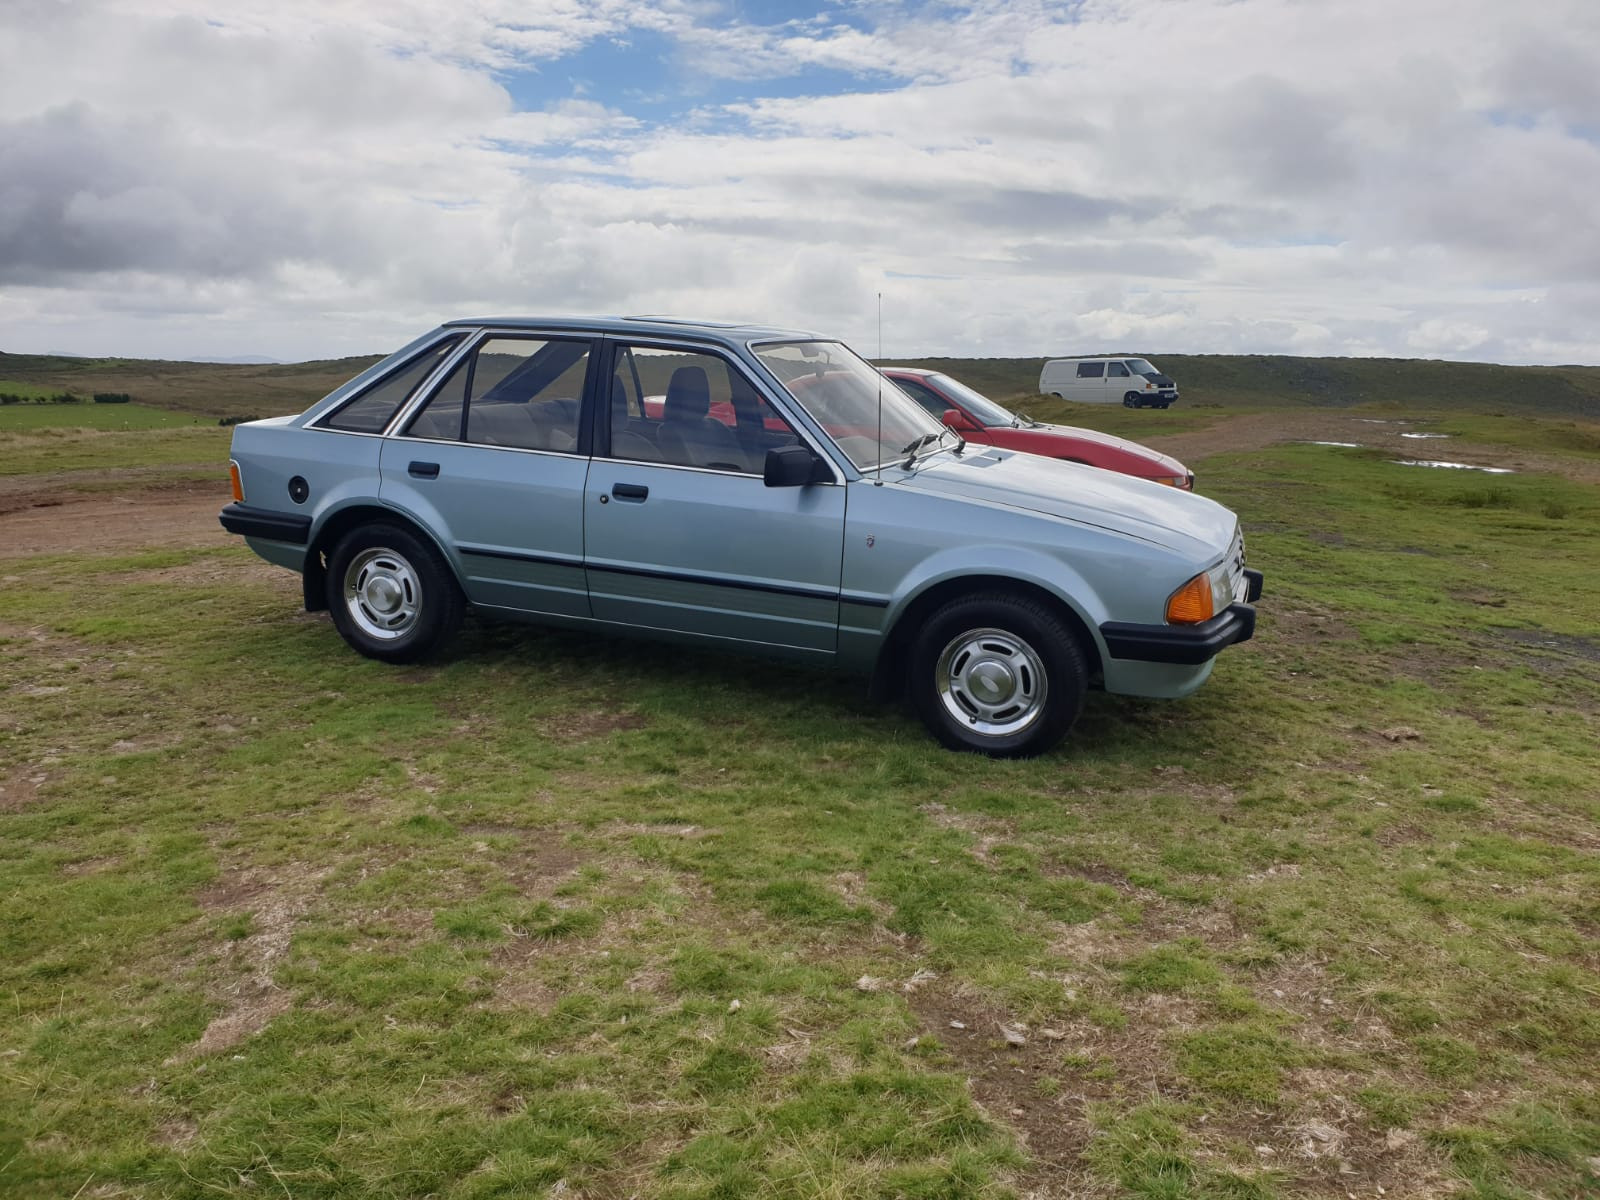 Ford Escort 1.3 Ghia Hire Stourport-on-severn